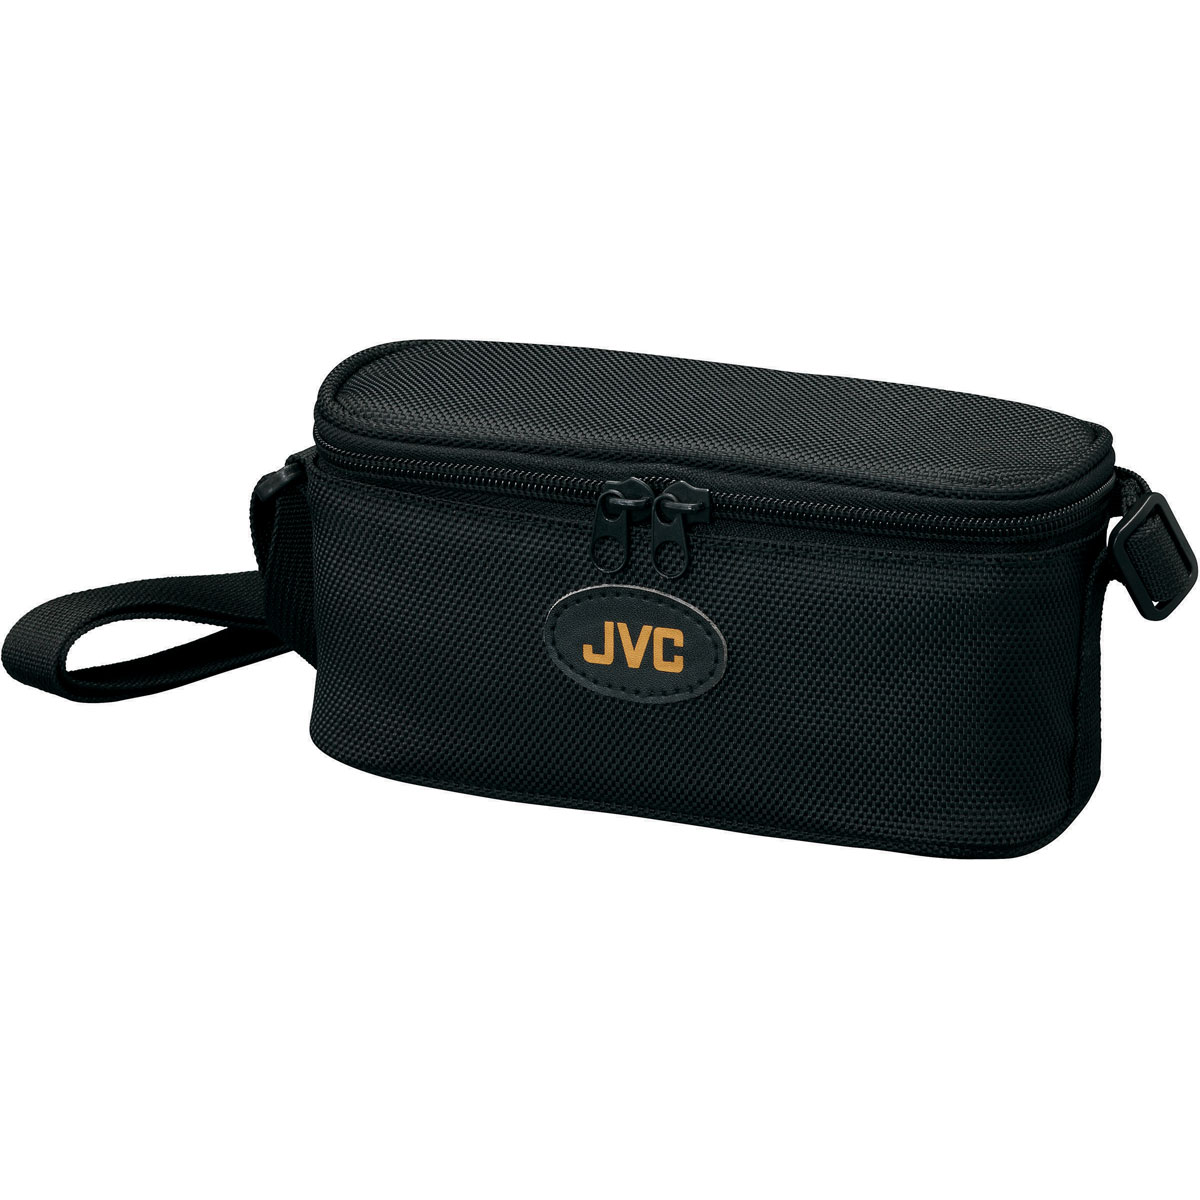 Jvc cb vm89 sacoche cam scope jvc sur for Housse camescope